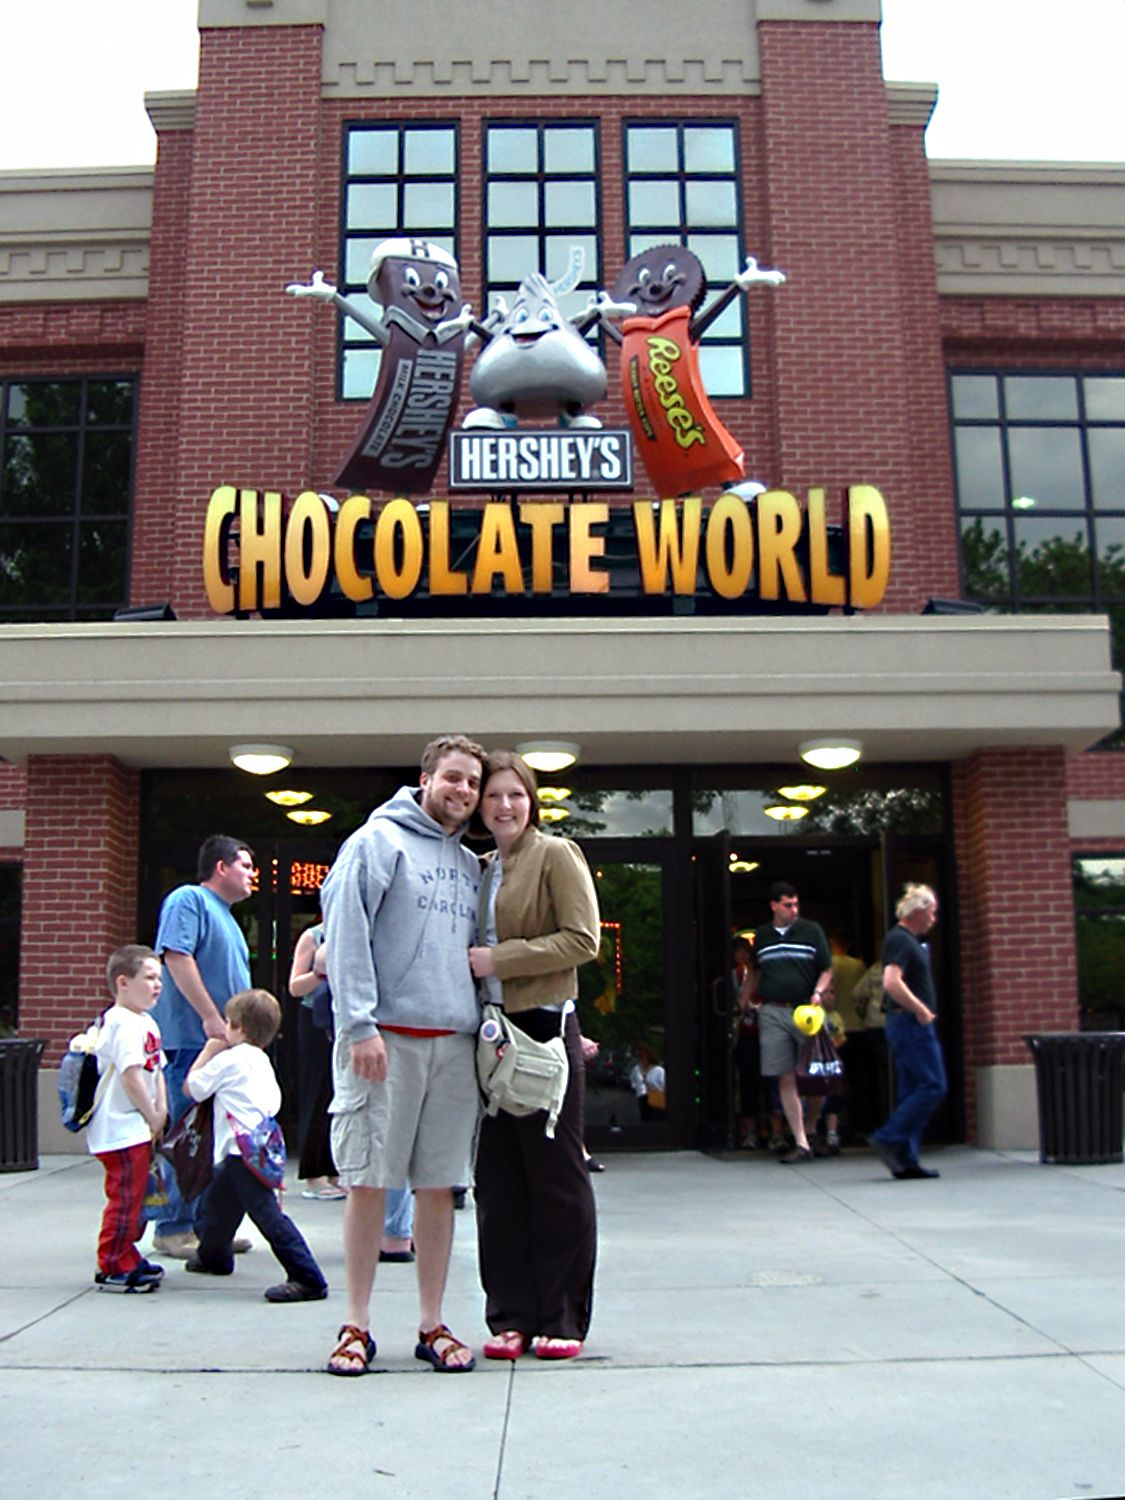 Hershey Park is always a success that combines our